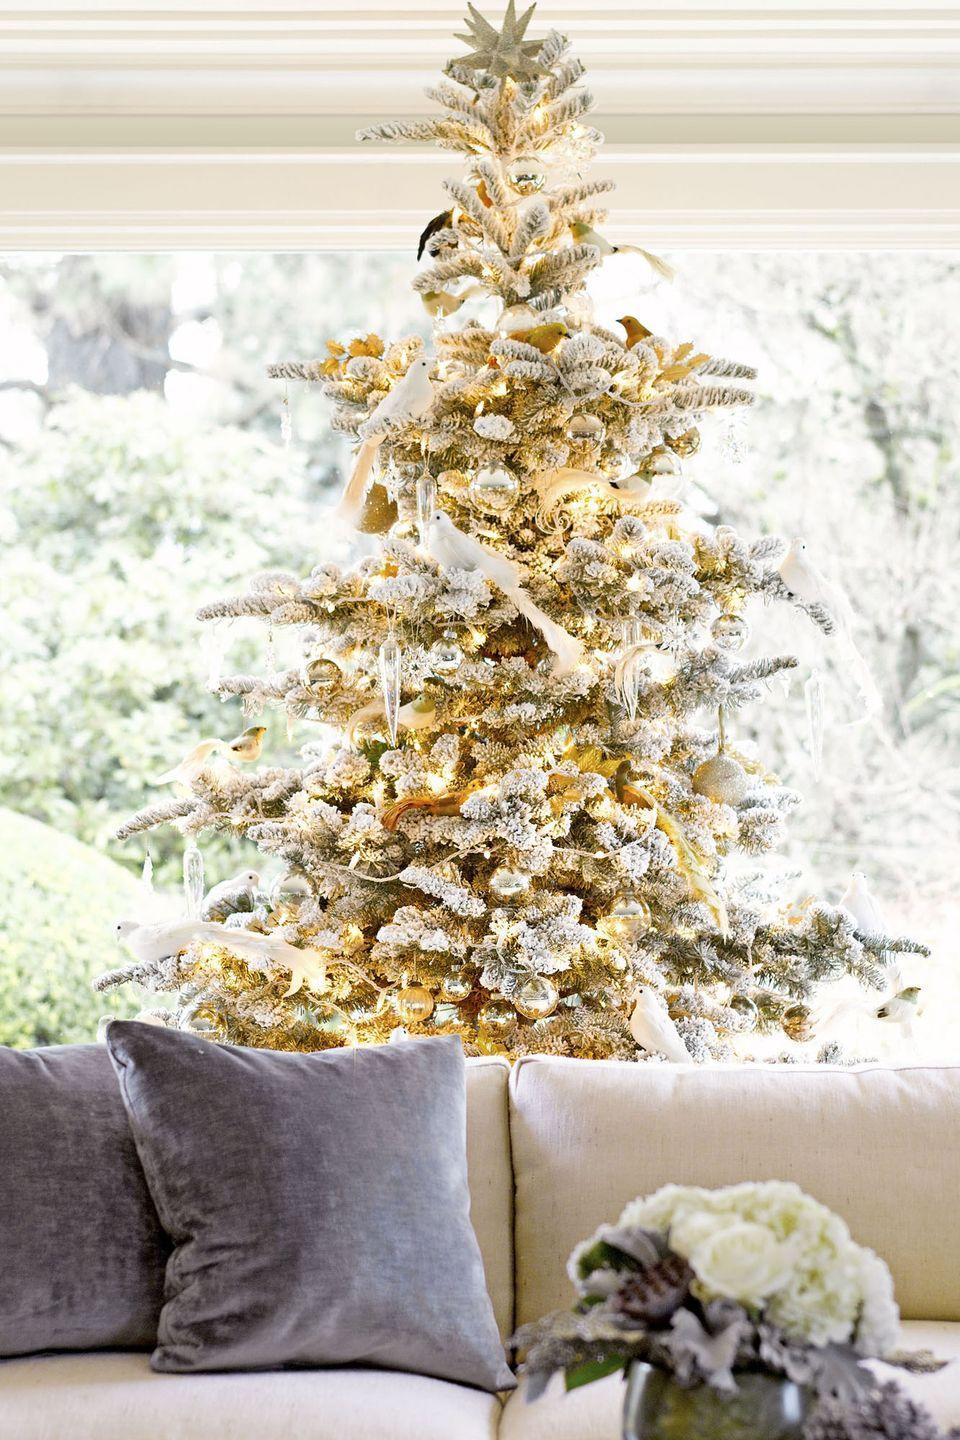 """<p>For an understated (but totally glamorous) option, spruce up a snow-covered pine with white doves, twinkle lights, and gold baubles. </p><p><strong>RELATED: </strong><a href=""""https://www.goodhousekeeping.com/holidays/christmas-ideas/g29022426/best-white-christmas-trees/"""" rel=""""nofollow noopener"""" target=""""_blank"""" data-ylk=""""slk:14 Best White Christmas Trees"""" class=""""link rapid-noclick-resp"""">14 Best White Christmas Trees</a></p>"""